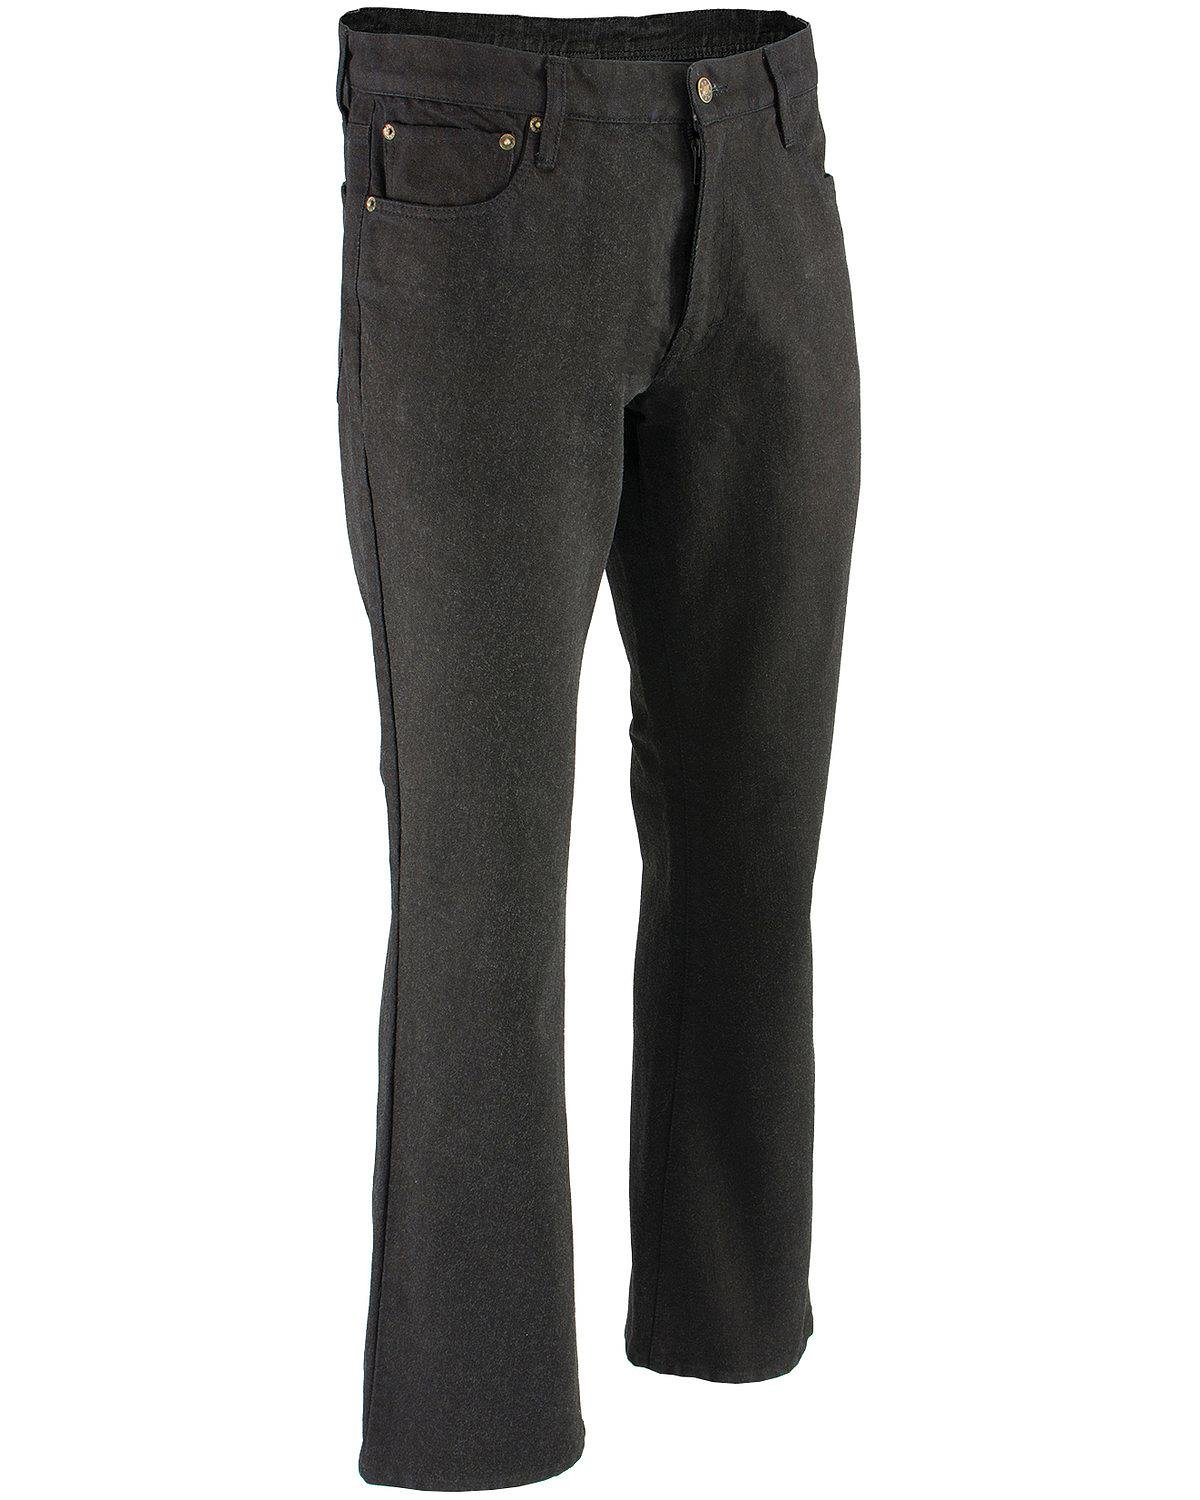 Milwaukee Leather Men's Denim Jeans Infused with Aramid (Black, 40)